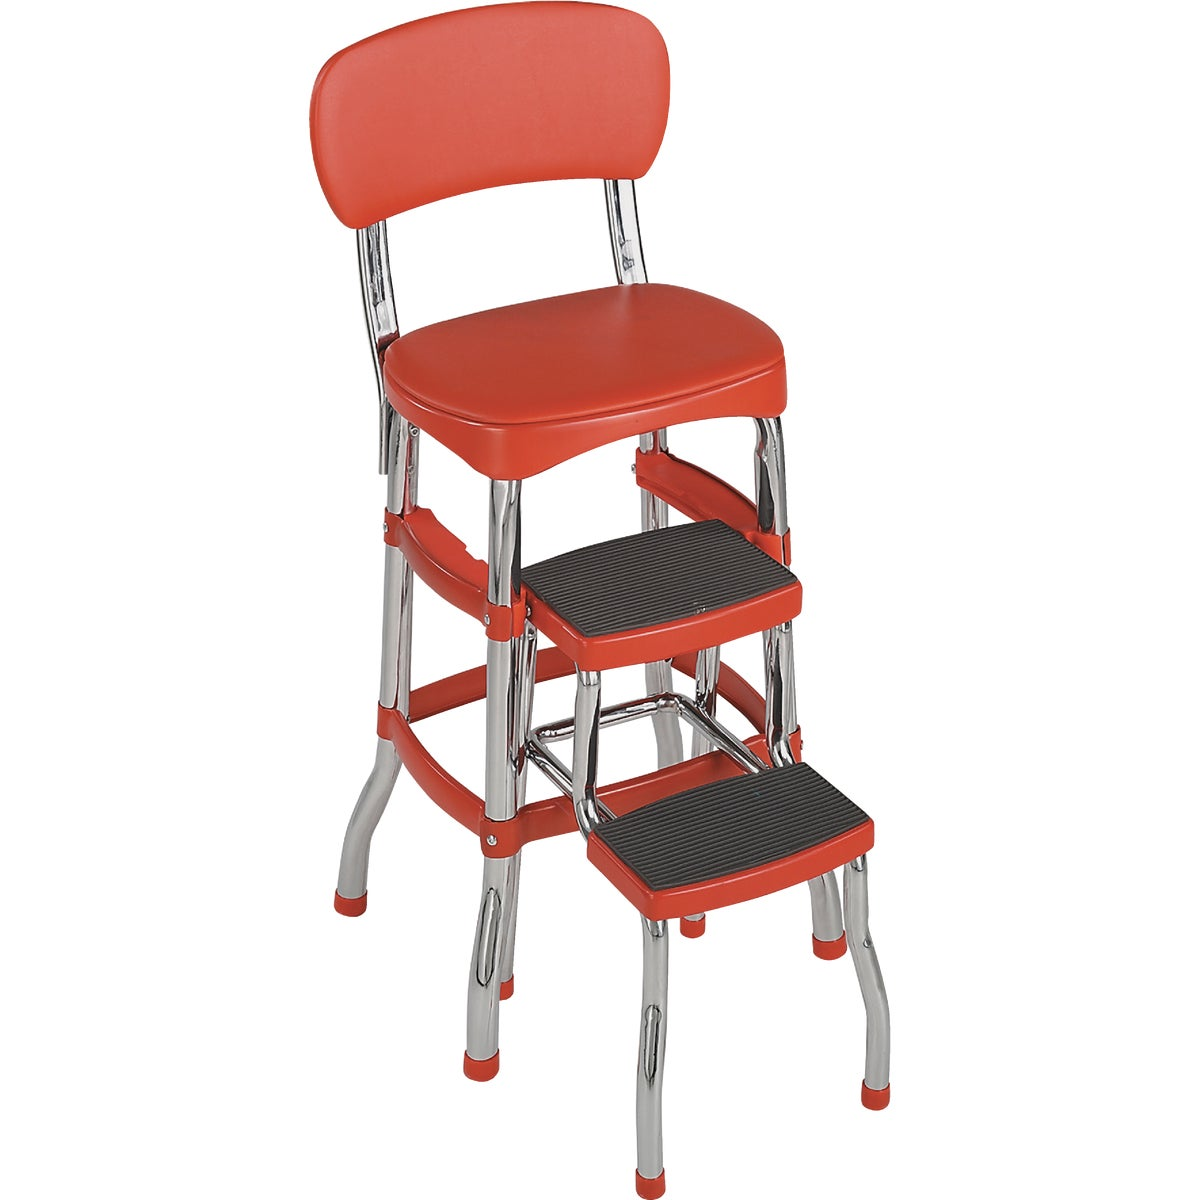 RETRO CHAIR/STEP STOOL - 11-120-RED1 by Cosco    J Myalls